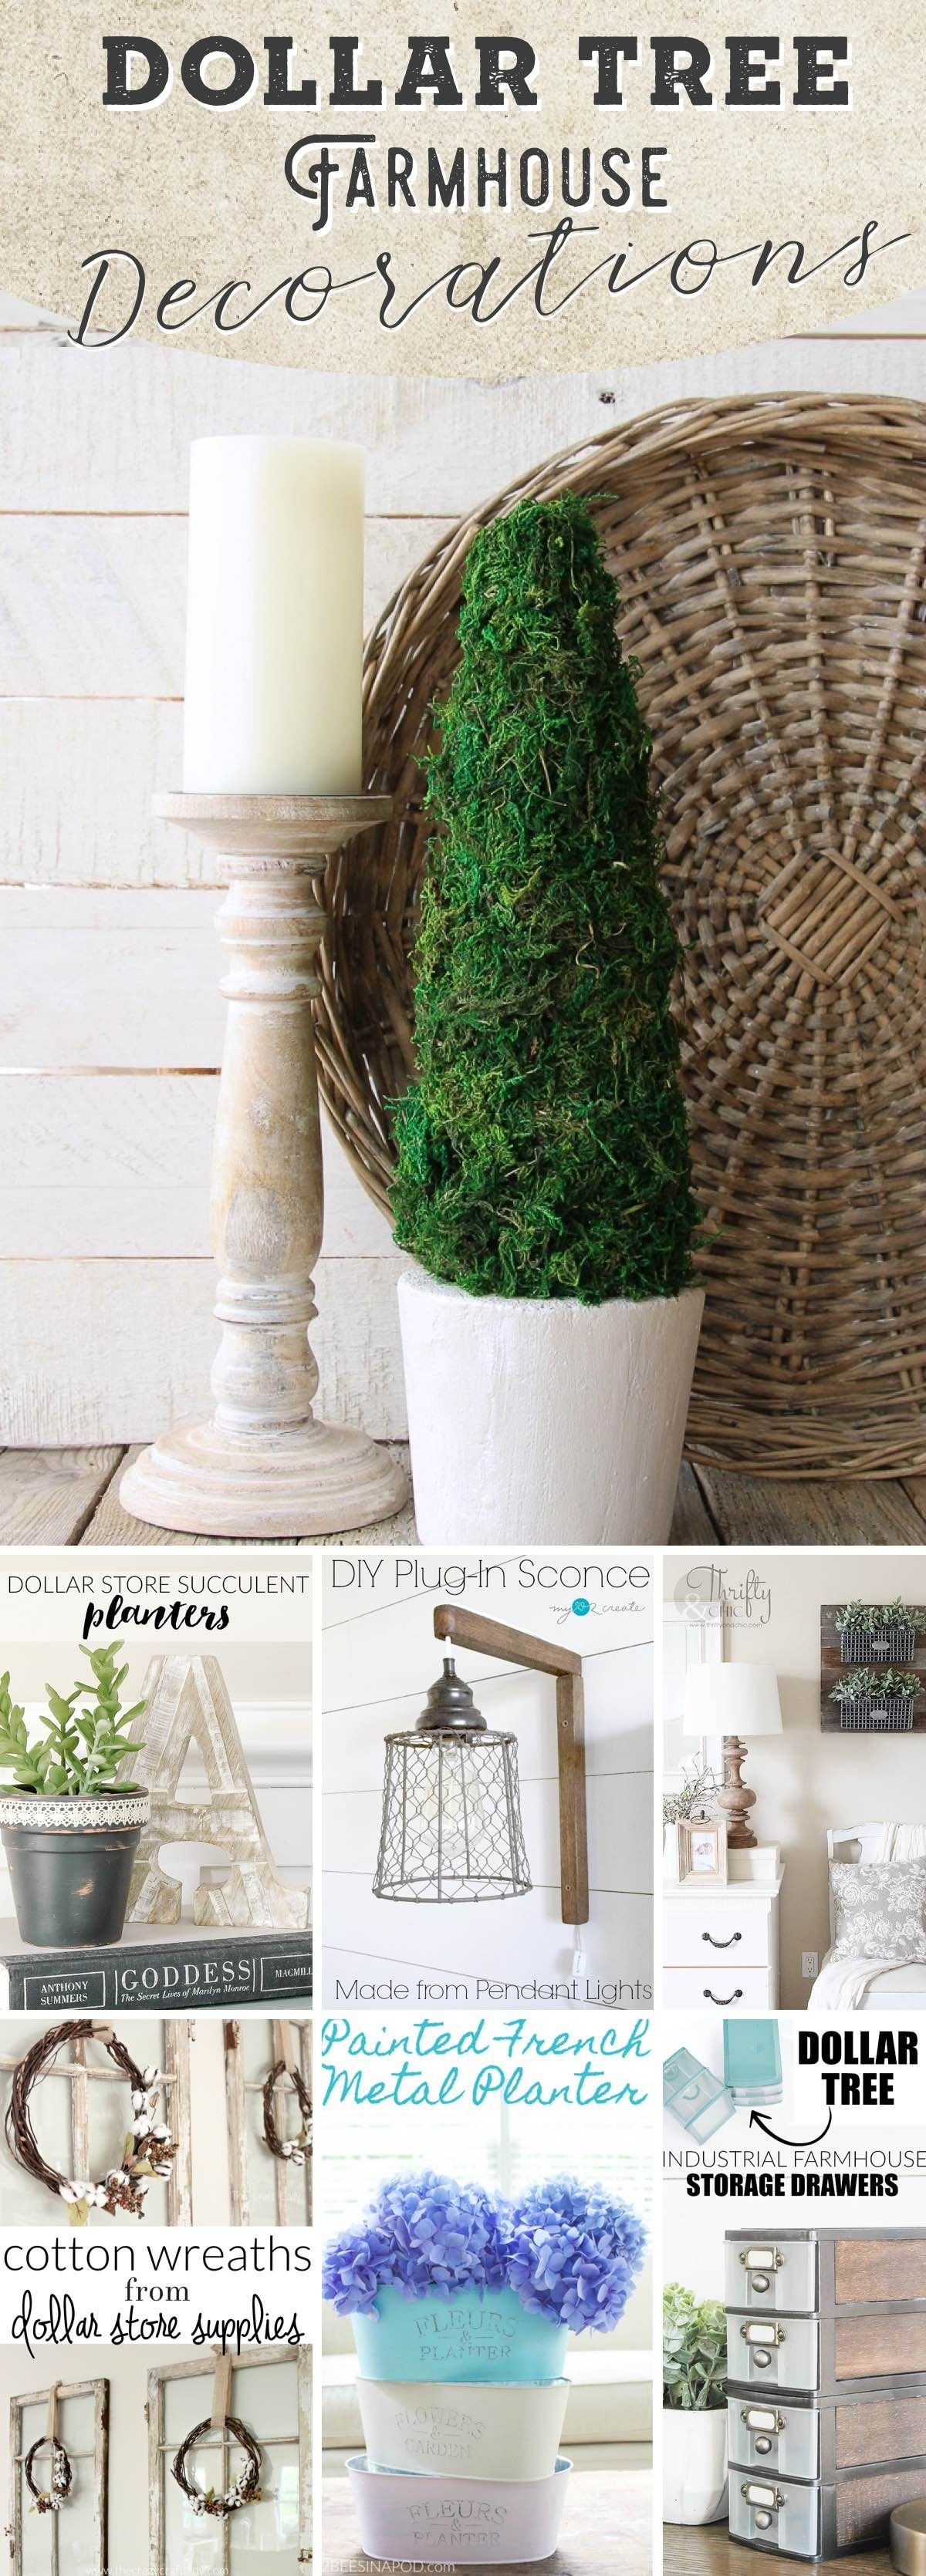 These Stunning Dollar Tree Farmhouse Decorations are True Gorgeousness! #dollartreecrafts